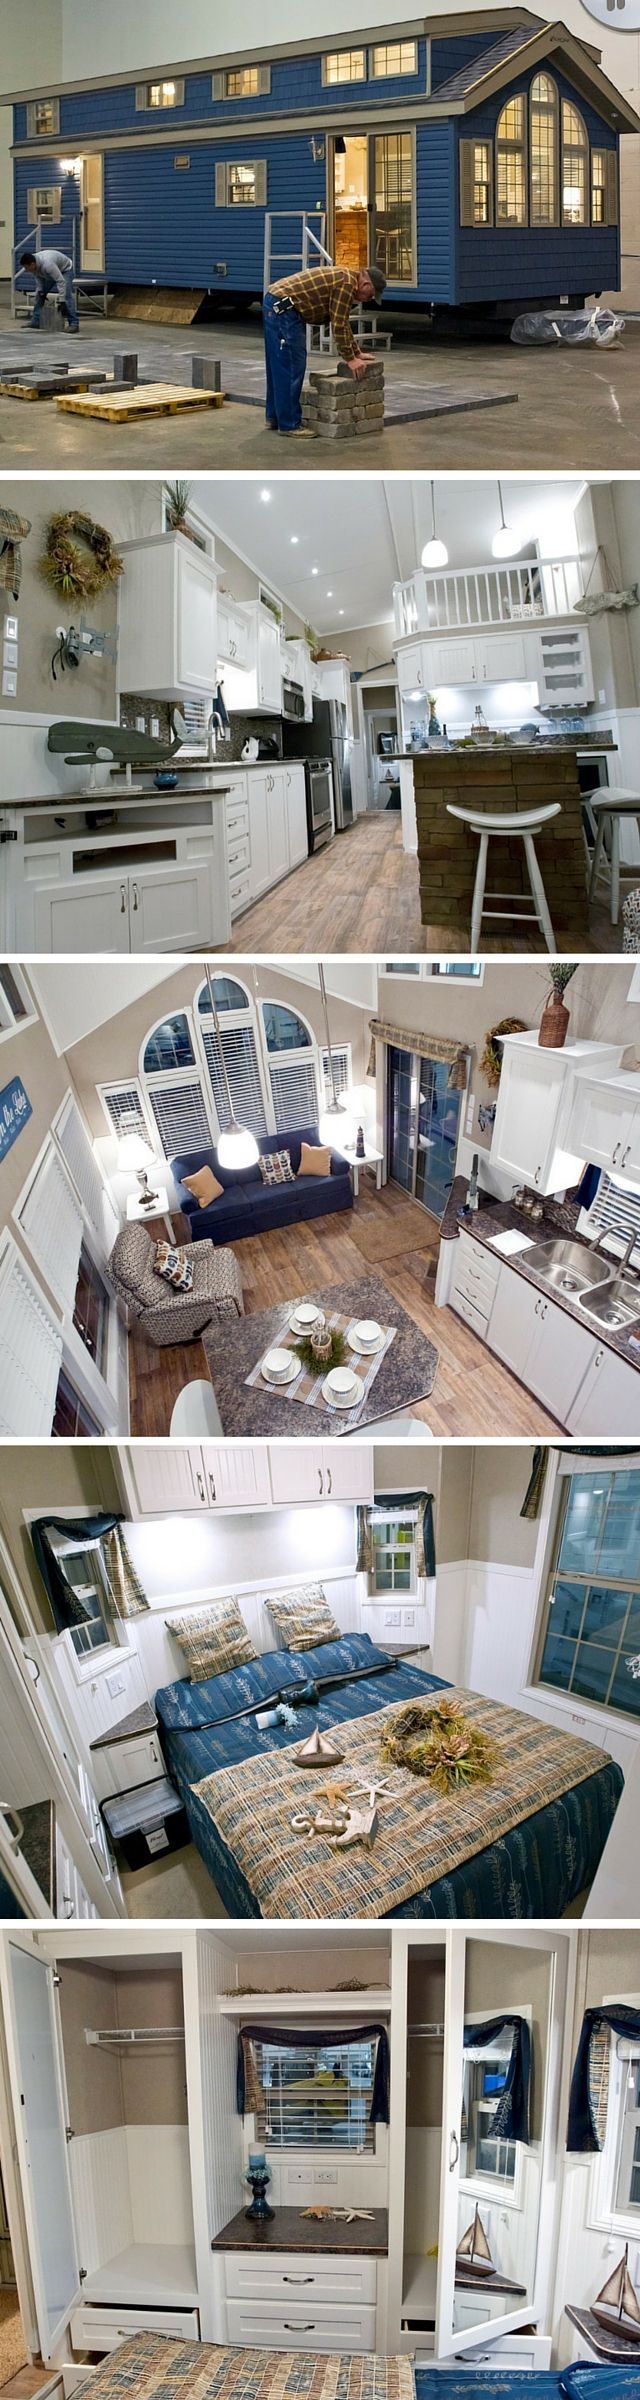 best 25+ small manufactured homes ideas on pinterest